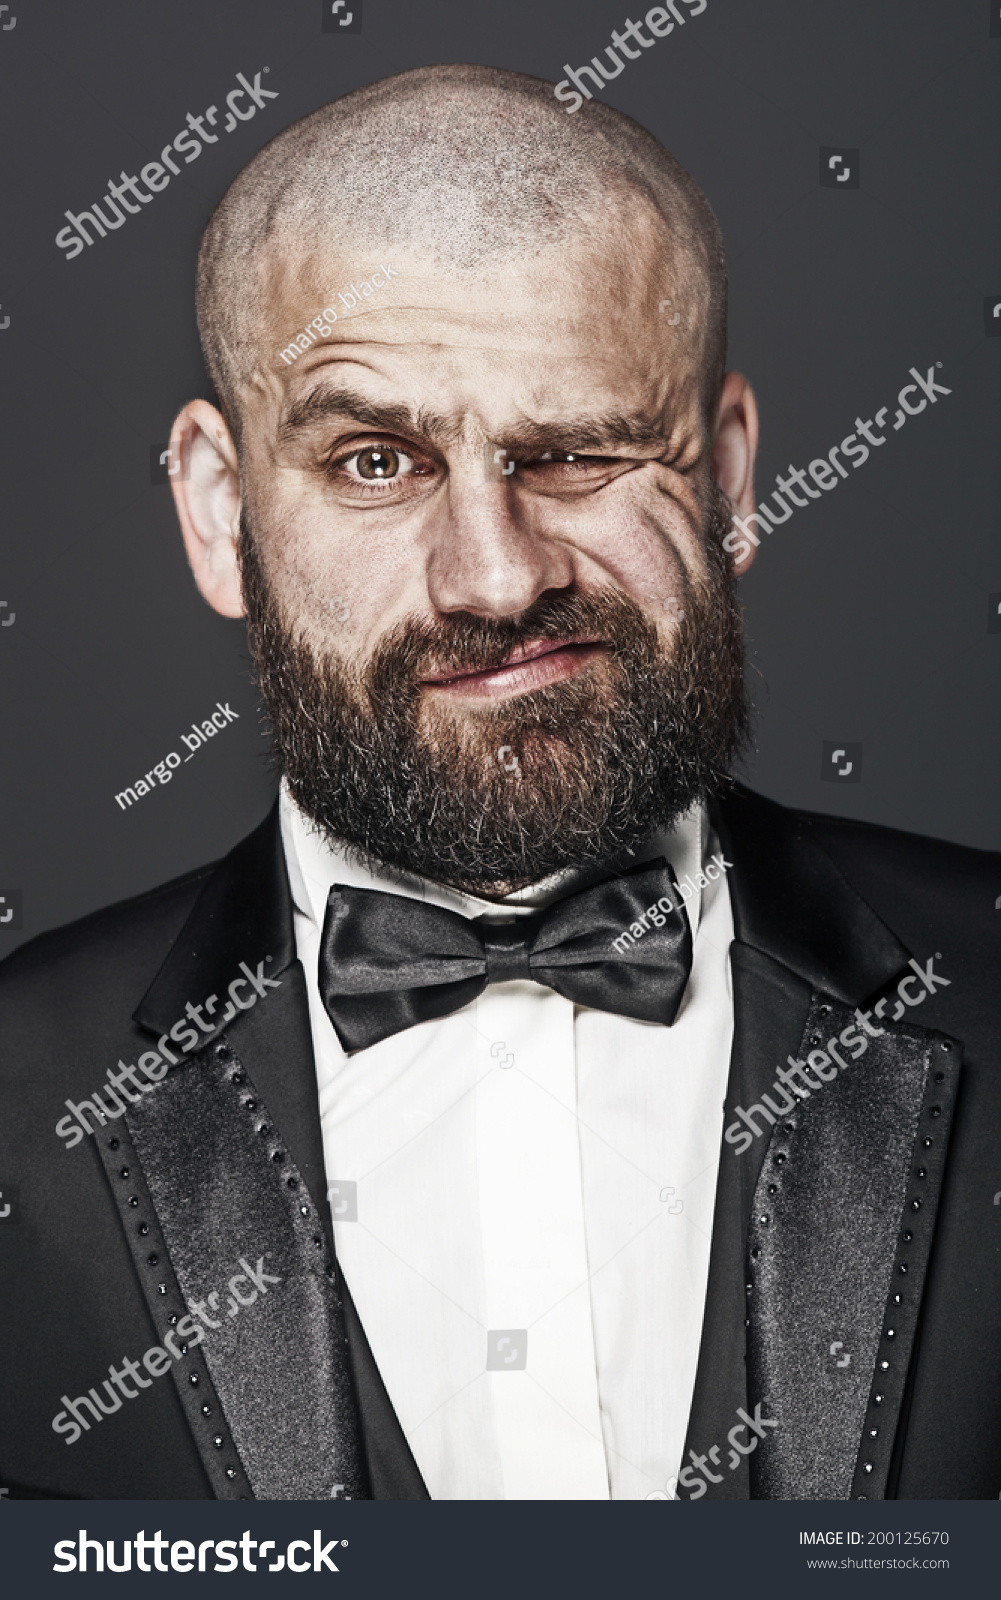 Excellent Stylish Brutal Bald Man Beard Elegant Stock Photo 200125670 Short Hairstyles For Black Women Fulllsitofus